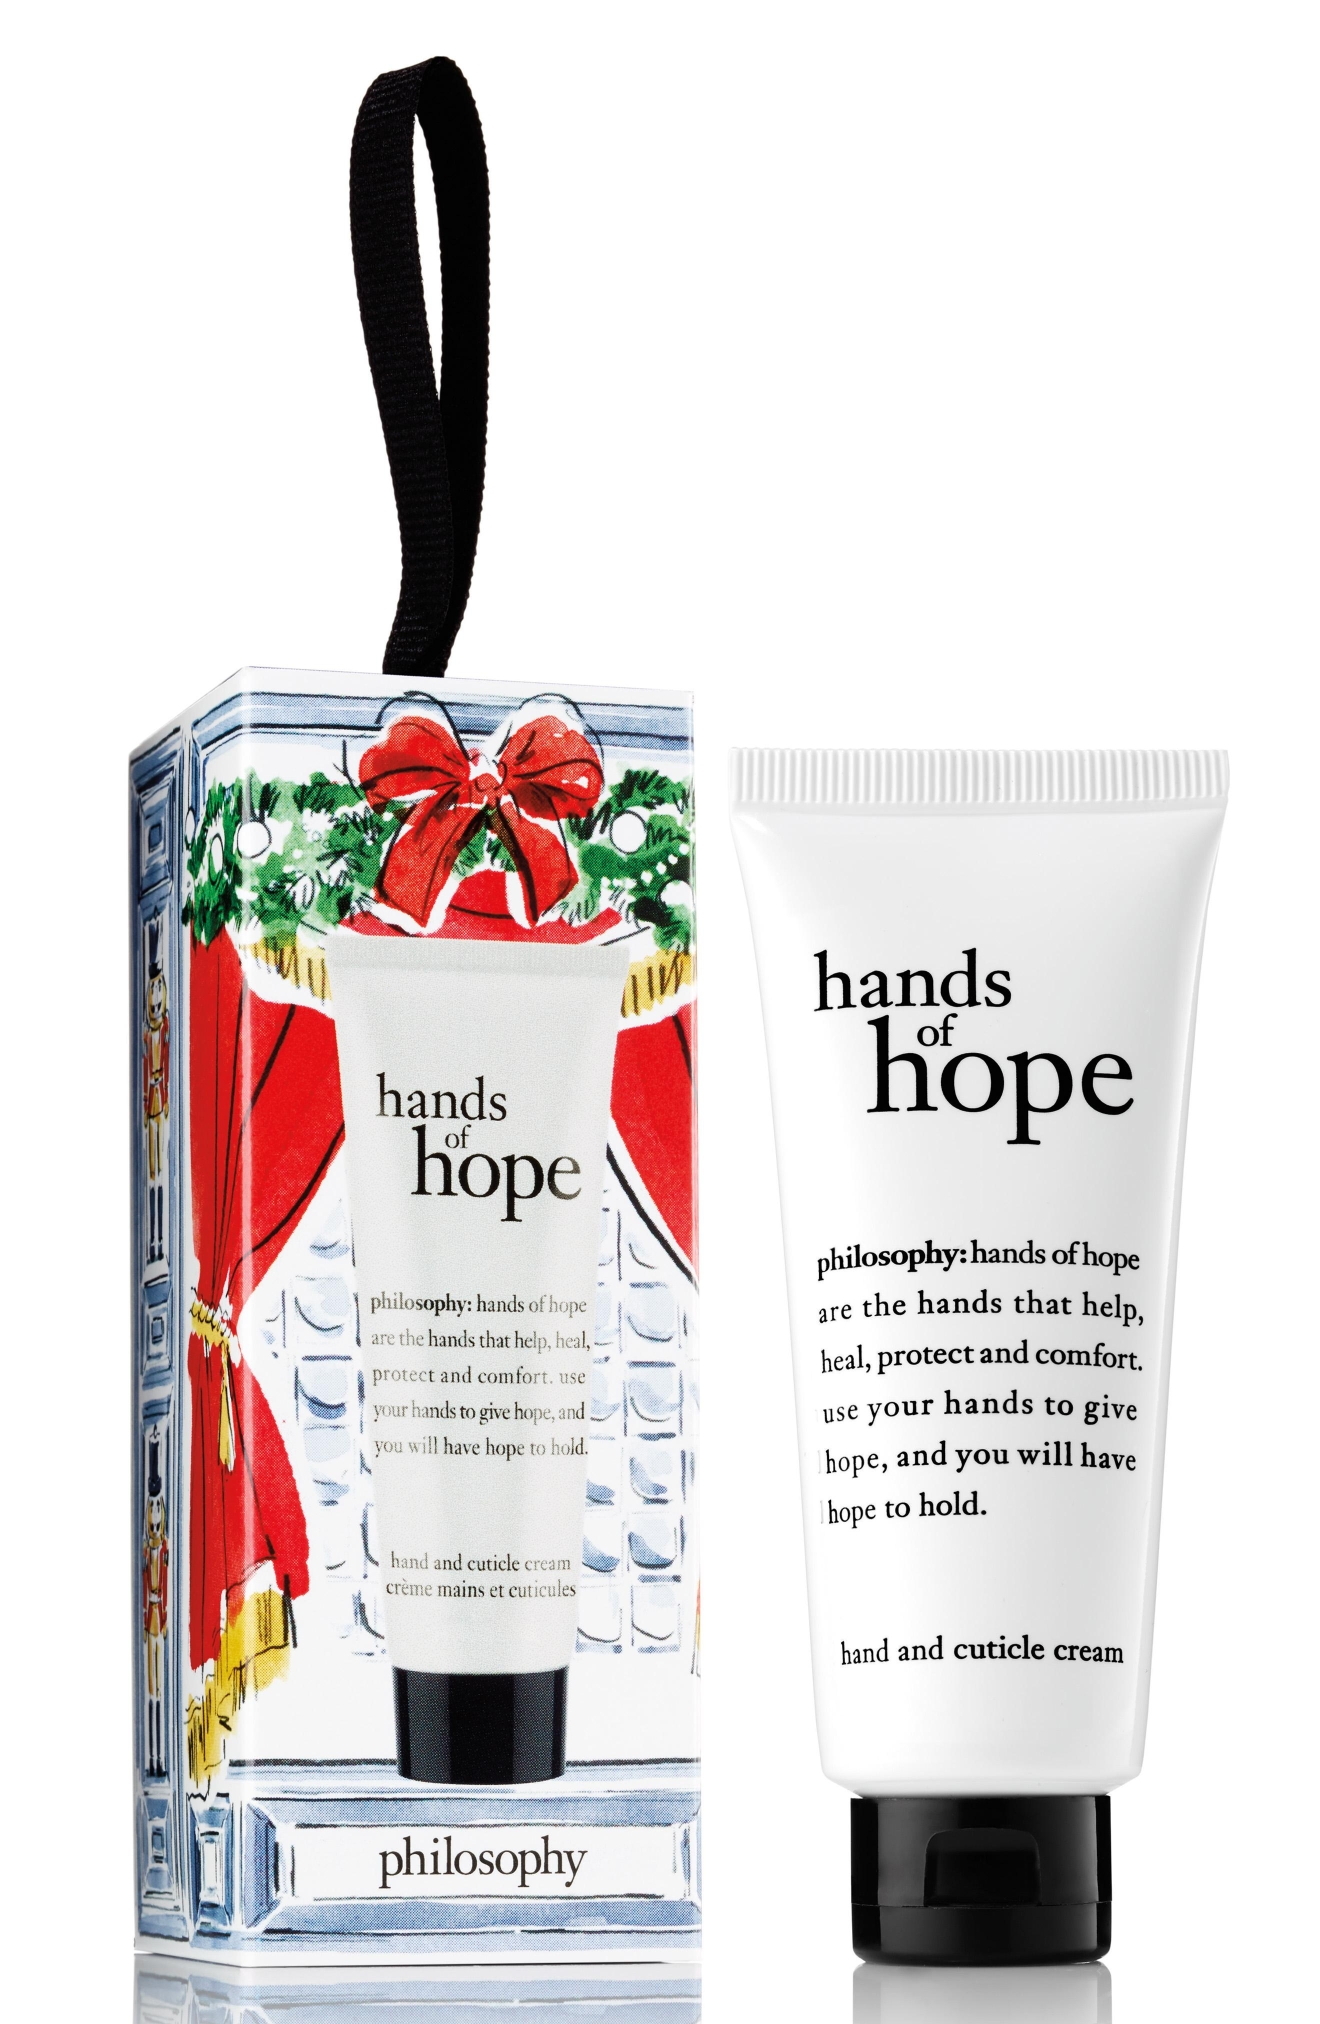 Philosophy 'hands of hope' hand & cuticle cream ornament $12 (Nordstrom)